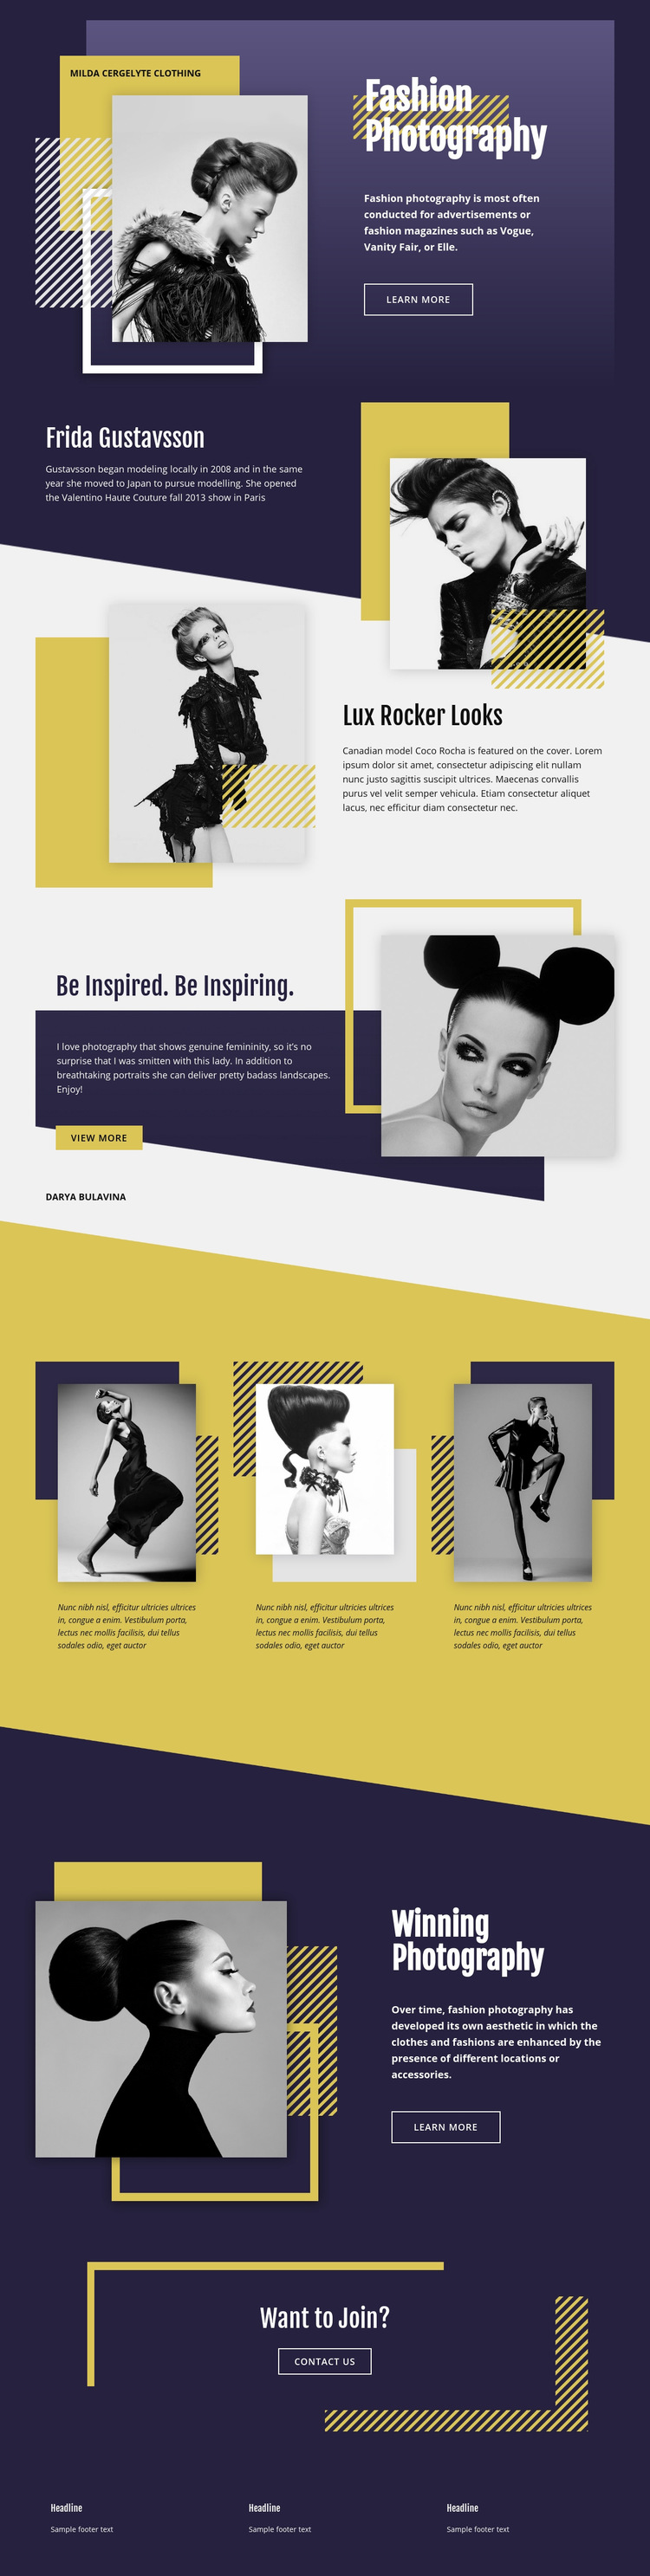 Fashion Photography Overlapping Web Page Design